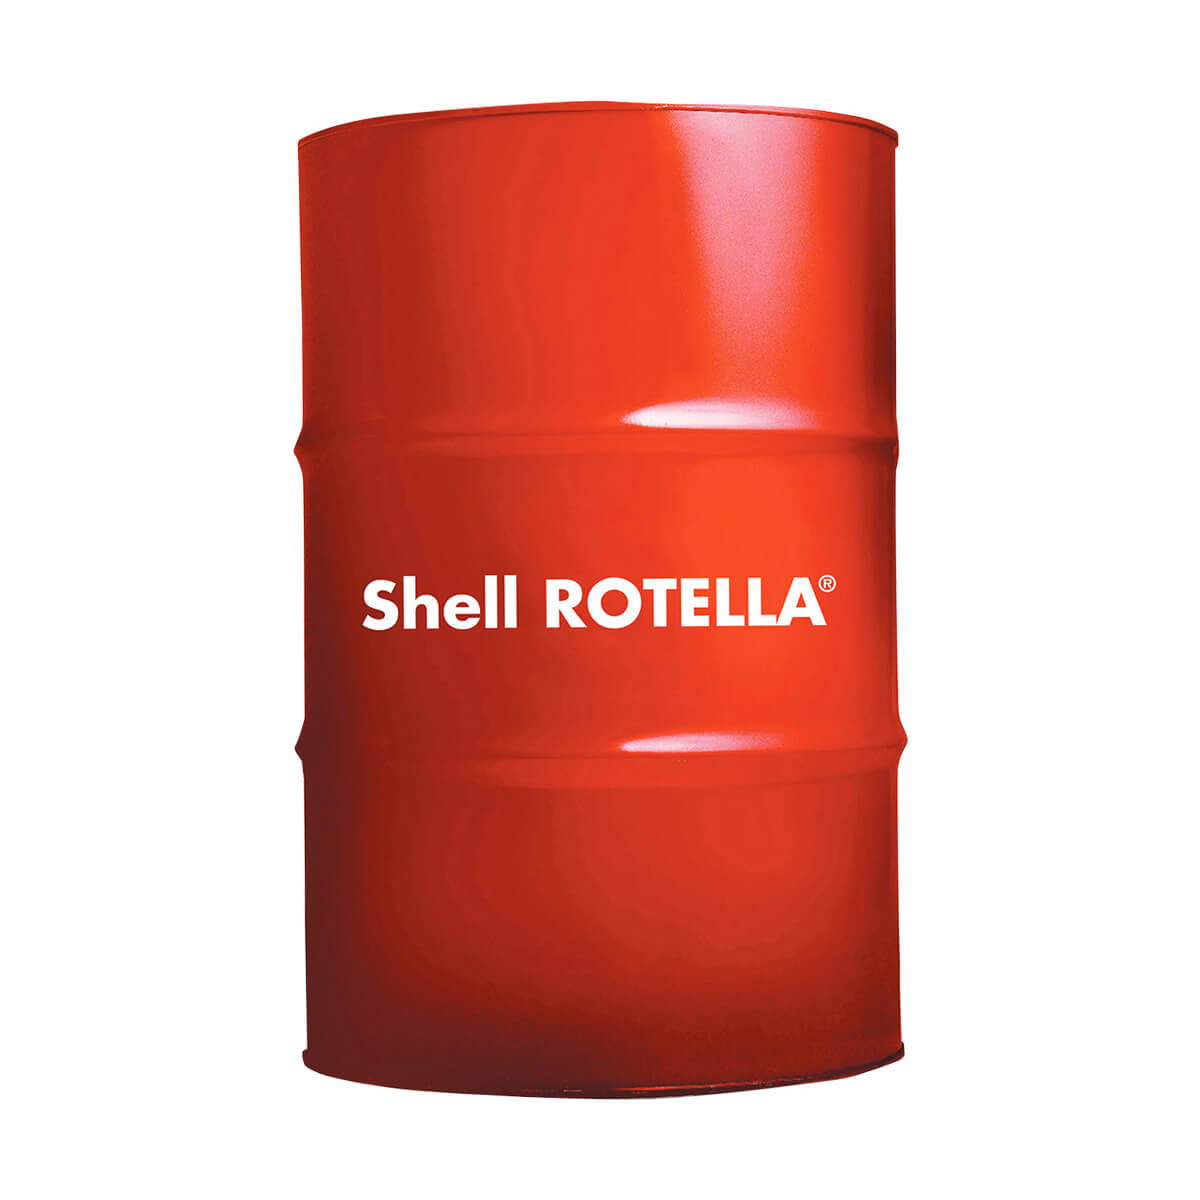 Shell Rotella T4 Triple Protection 15W-40 - 208L